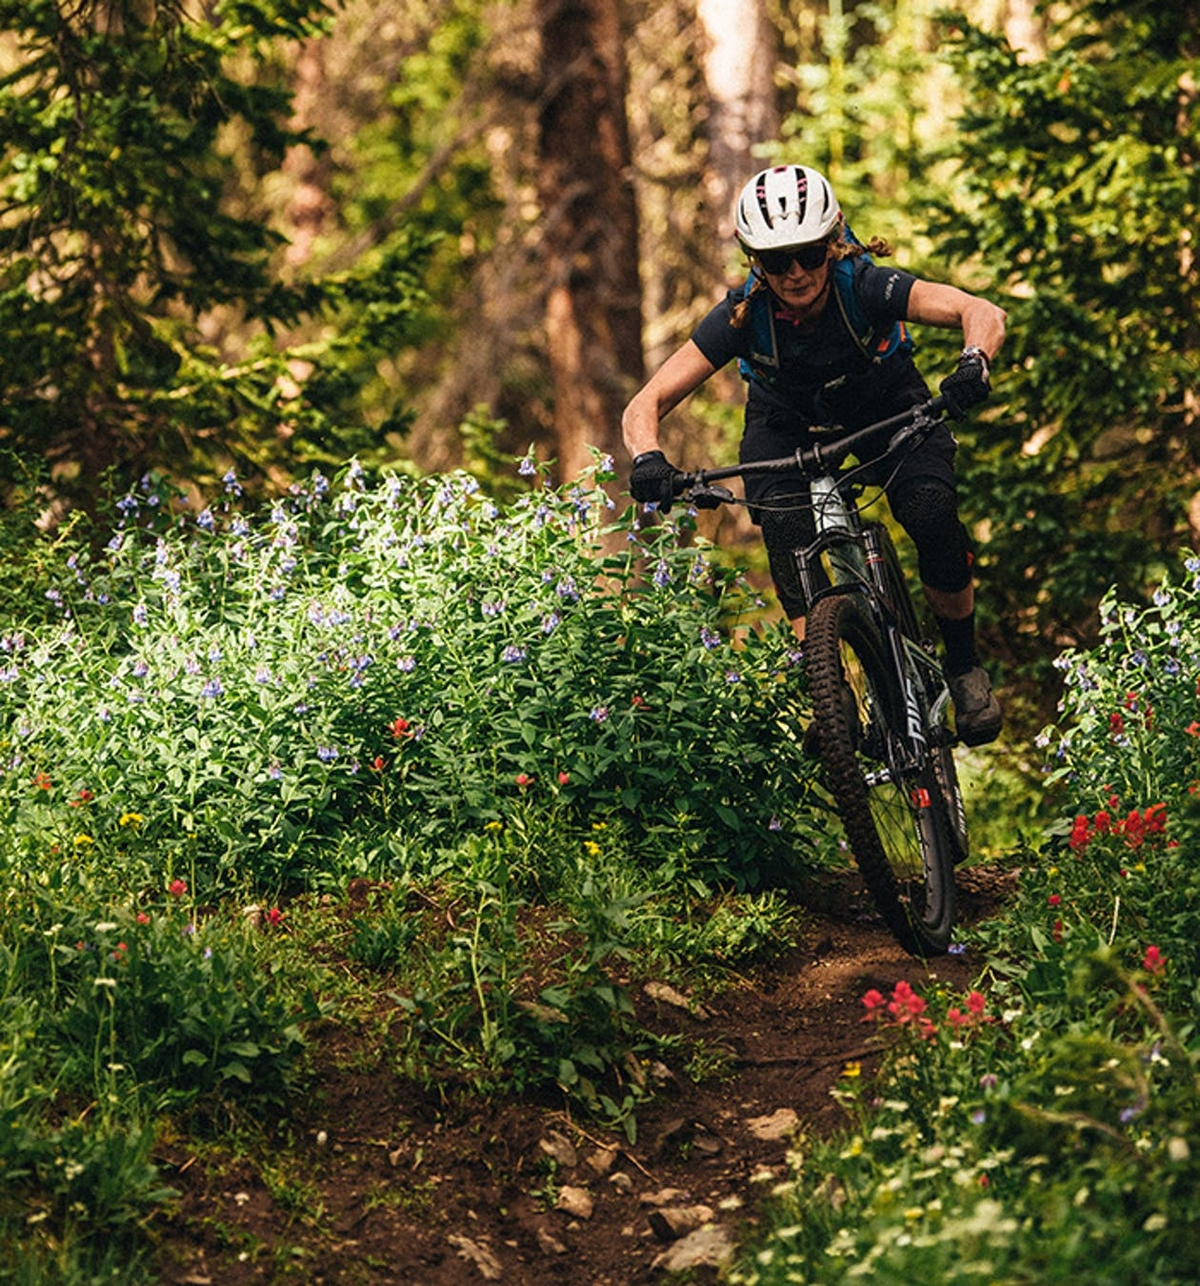 Riding the Juliana Joplin on a dirt trail surrounded by flower bushes